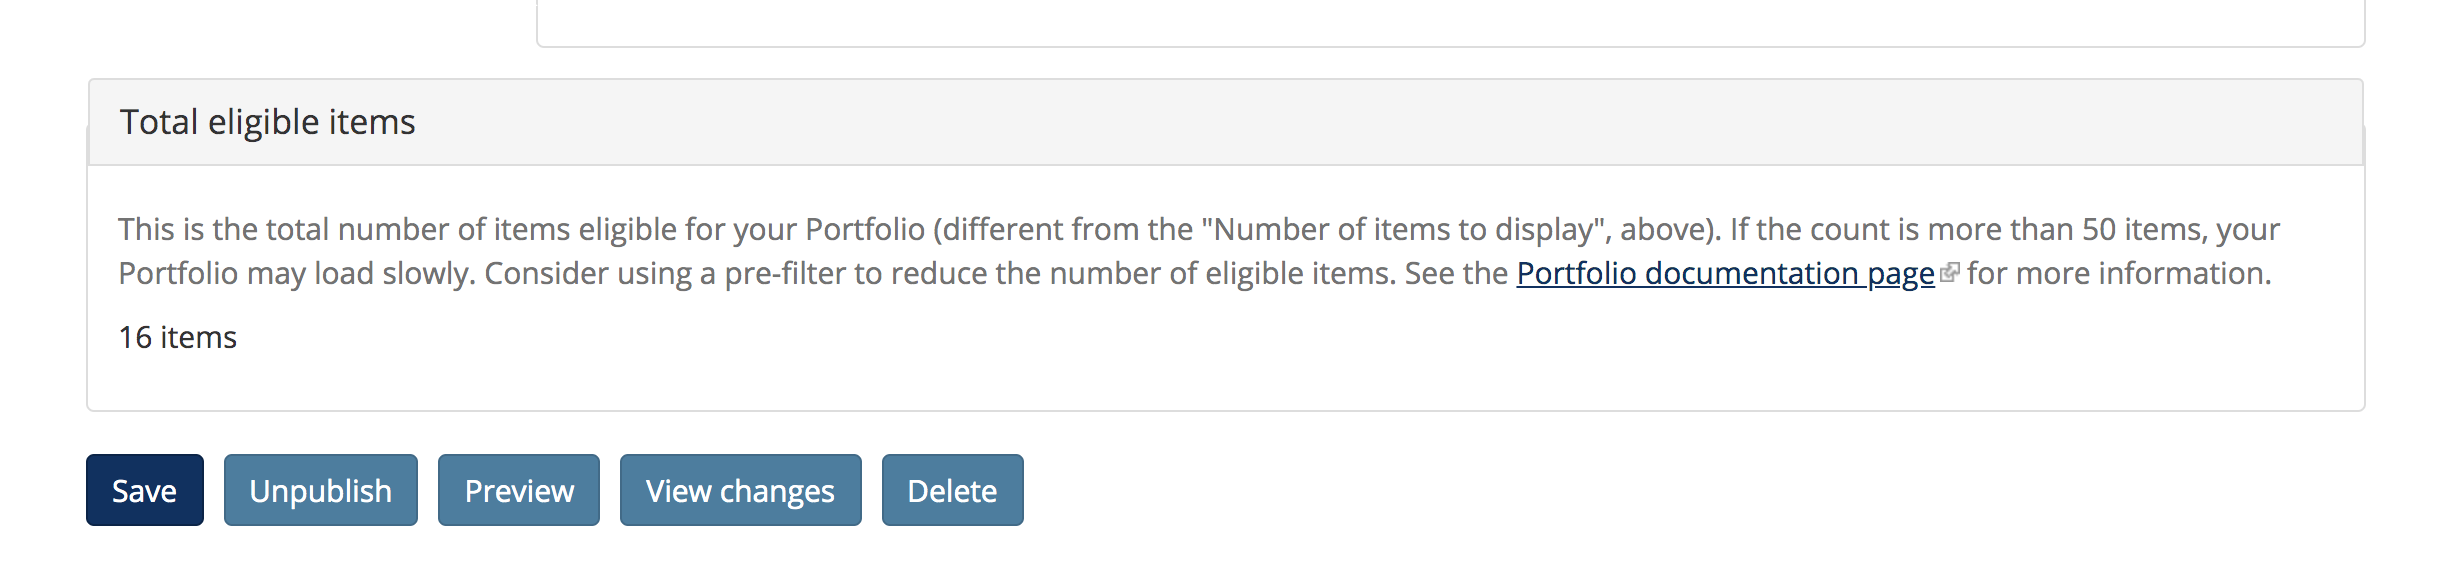 Screenshot of total number of items available in the Portfolio